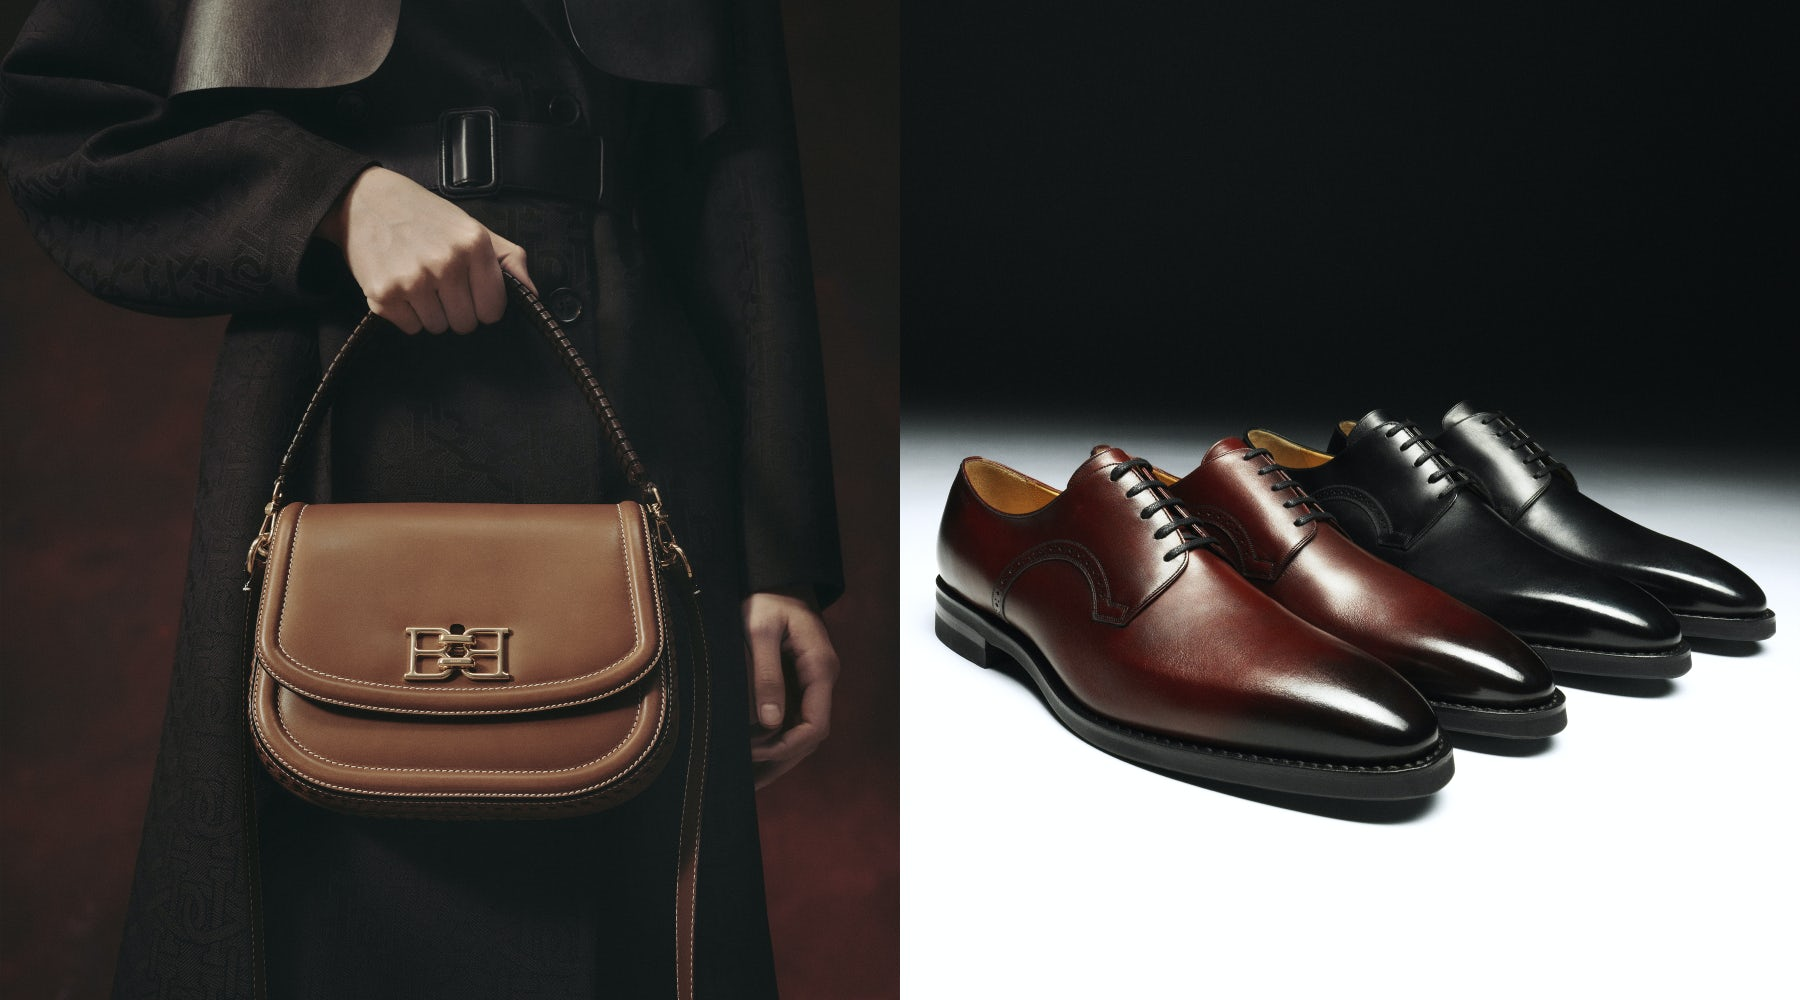 Bally\'s new Beckie bag and classic \